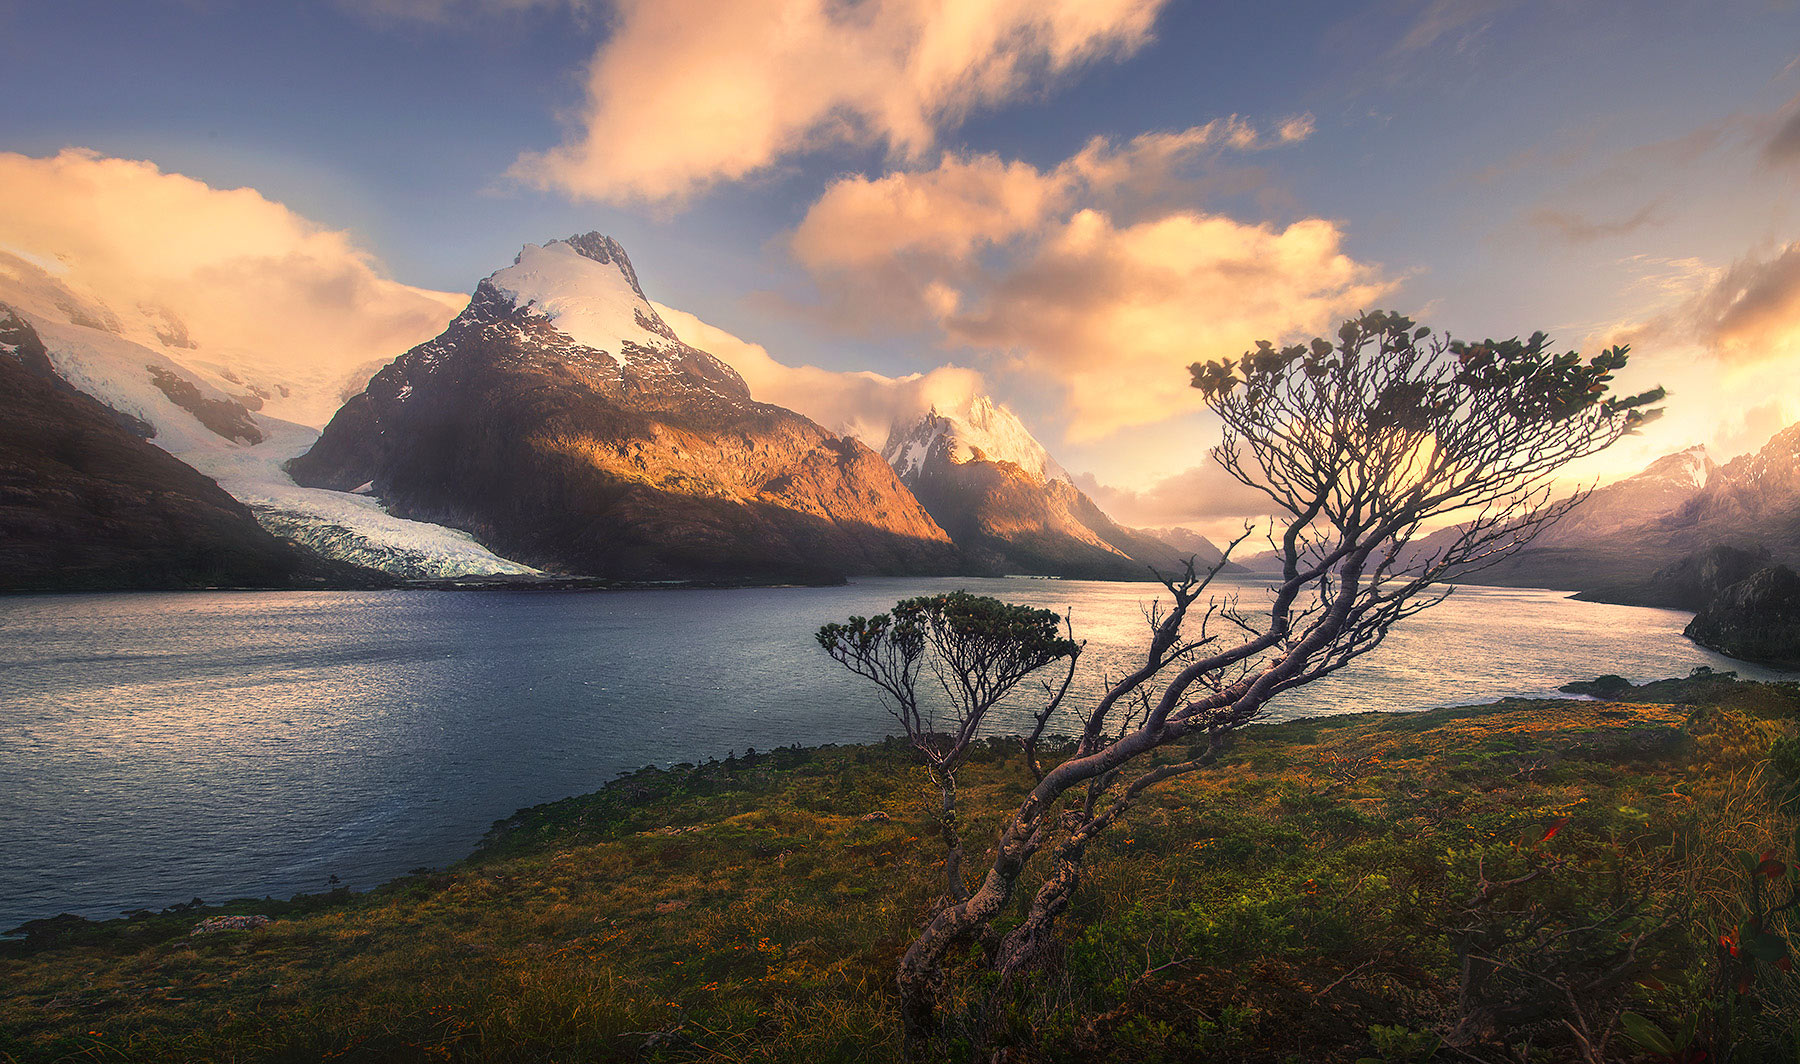 Patagonian fiords, coigue, tree, peaks, Chile, photo